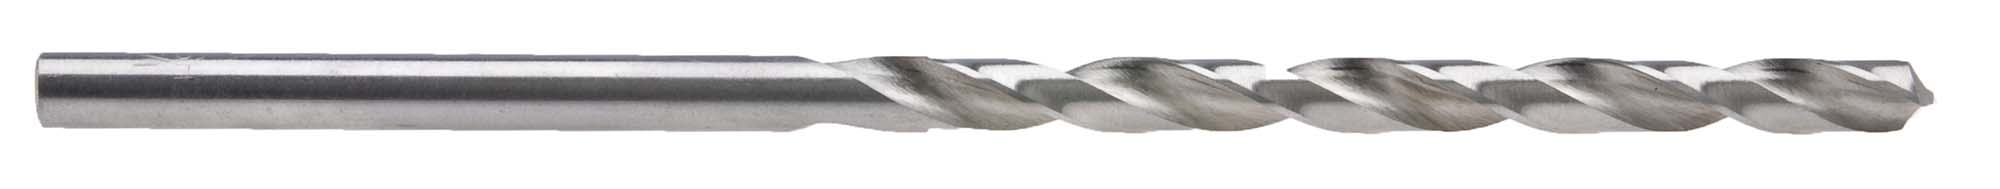 "M (.295"") ""Taper Length"" Long Straight Shank Drill Bit, High Speed Steel"